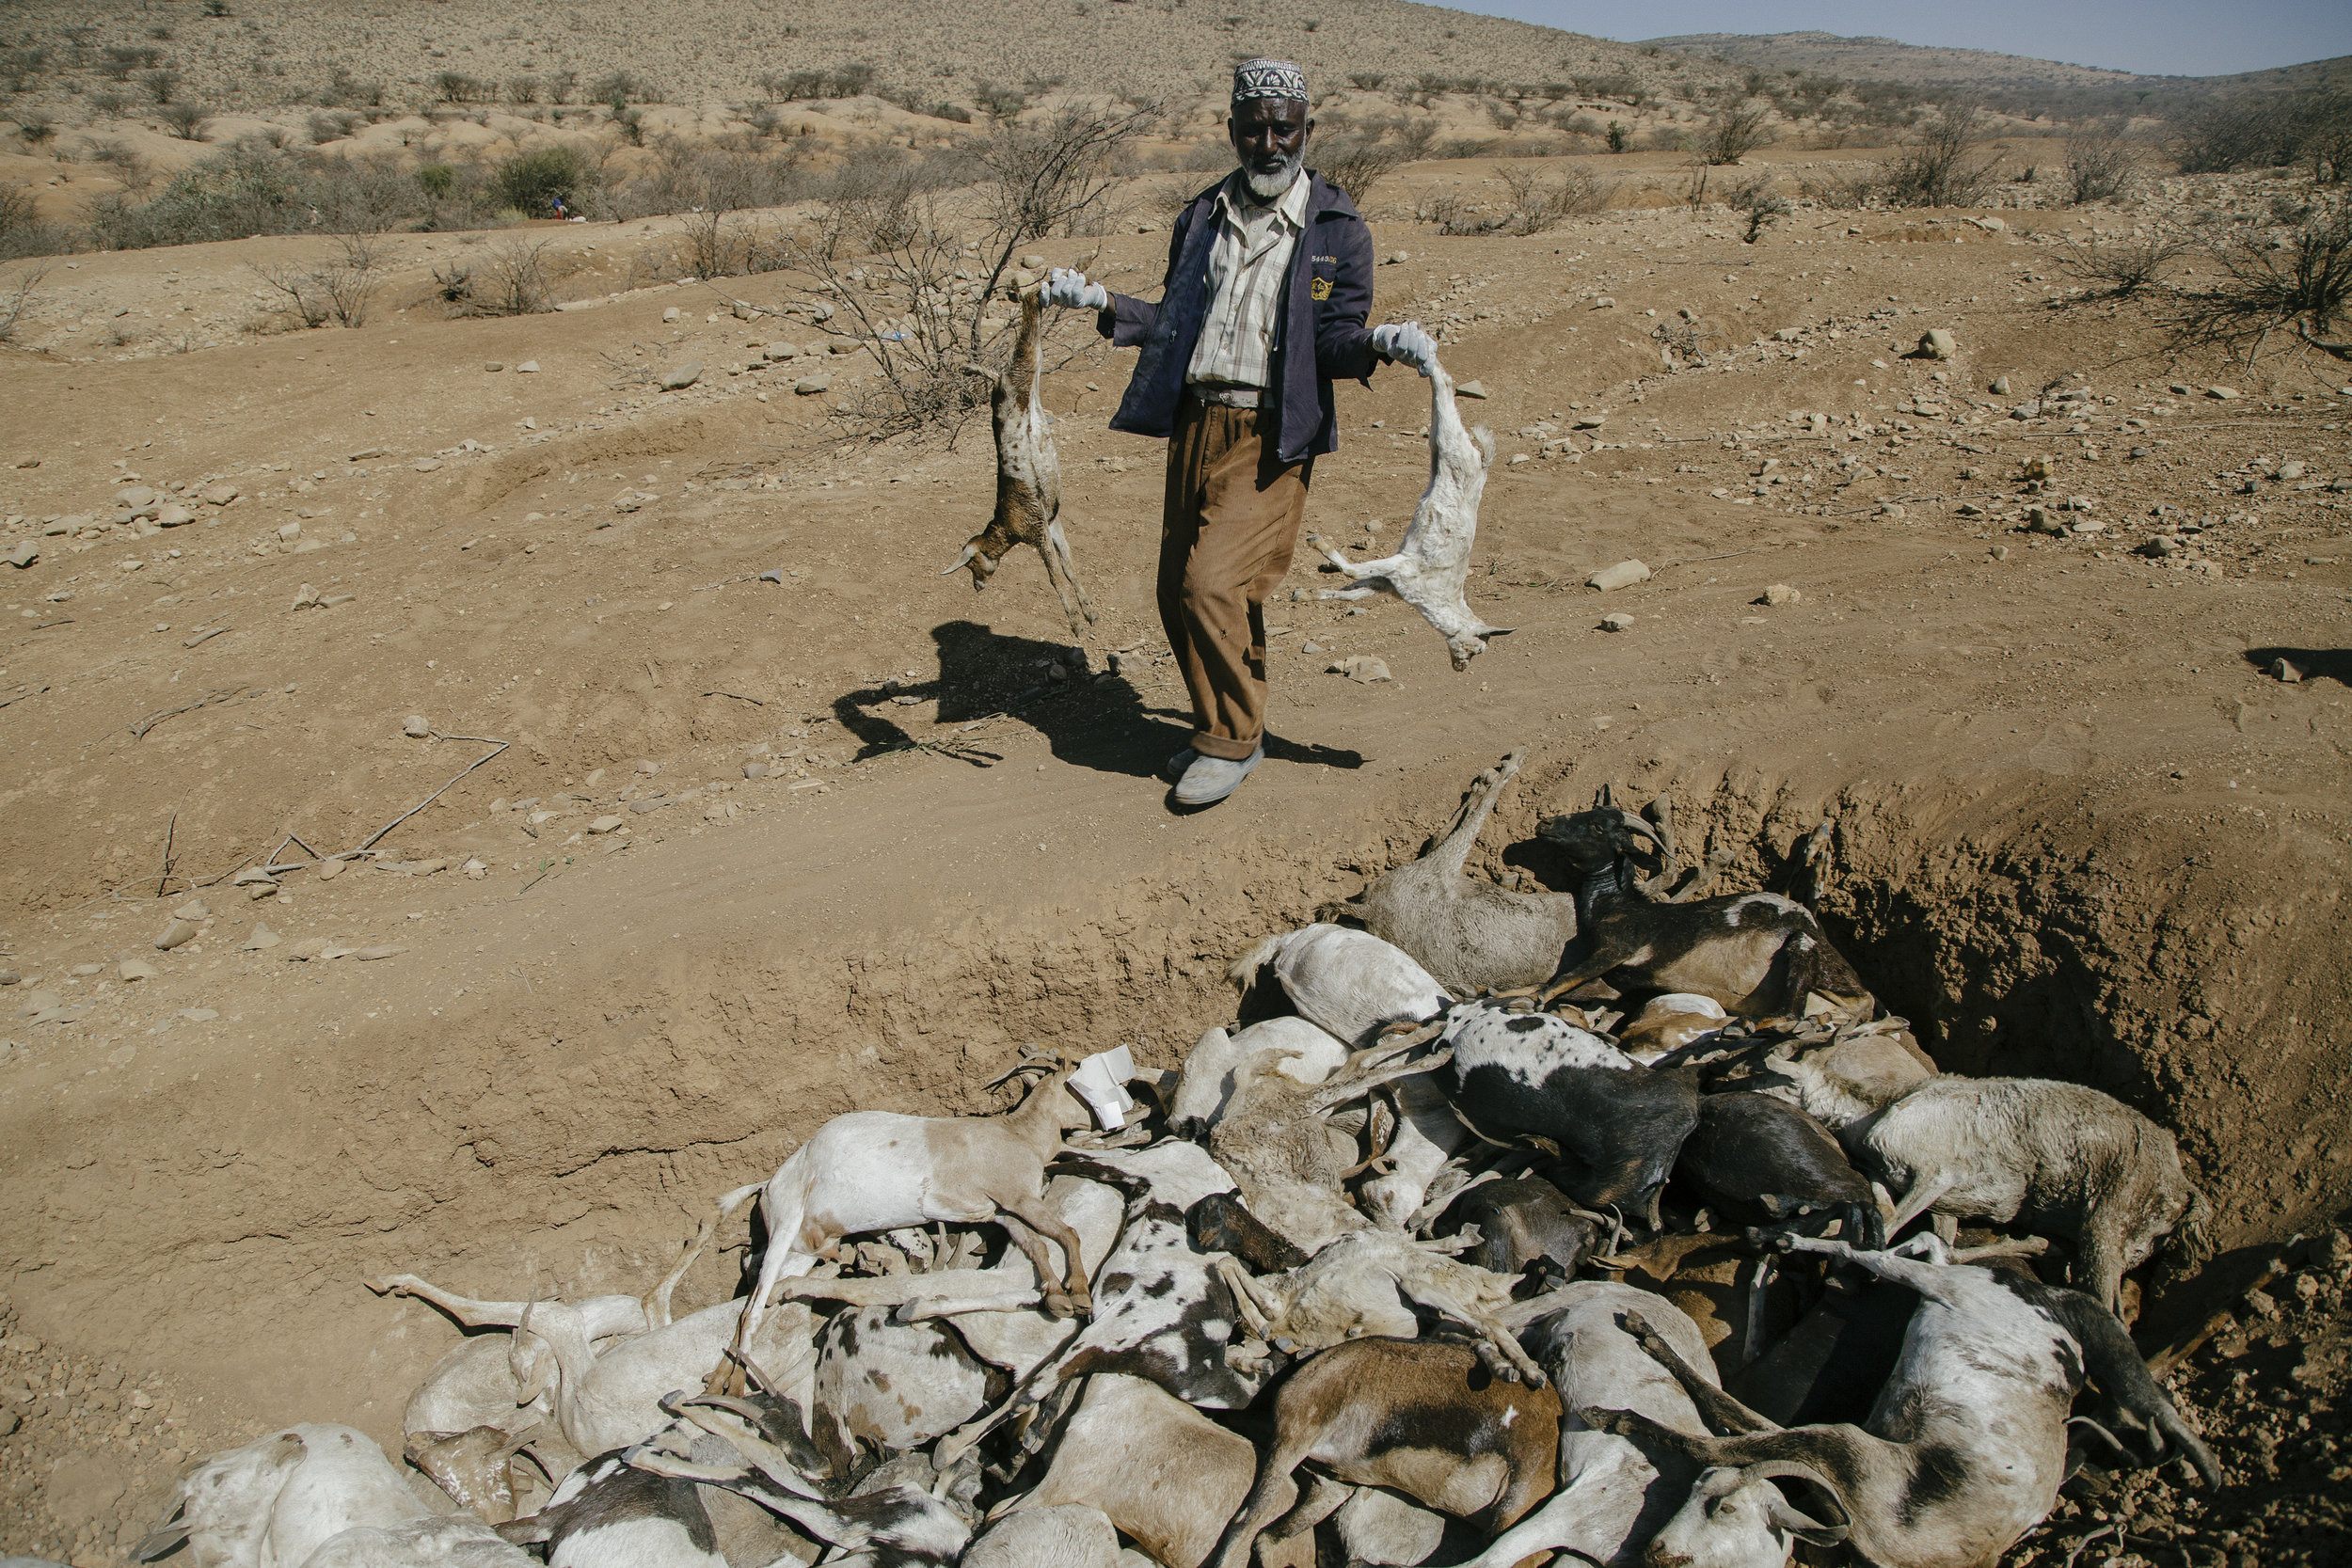 A man carries dead livestock to be burned in western Somaliland. The people had traveled hundreds of kilometers in search for water and grass for they animals. Here, near the village of Qulujeed, they had to stop and wait for emergency aid from the Red Crescent and other NGOs. The few animals still alive started to die.